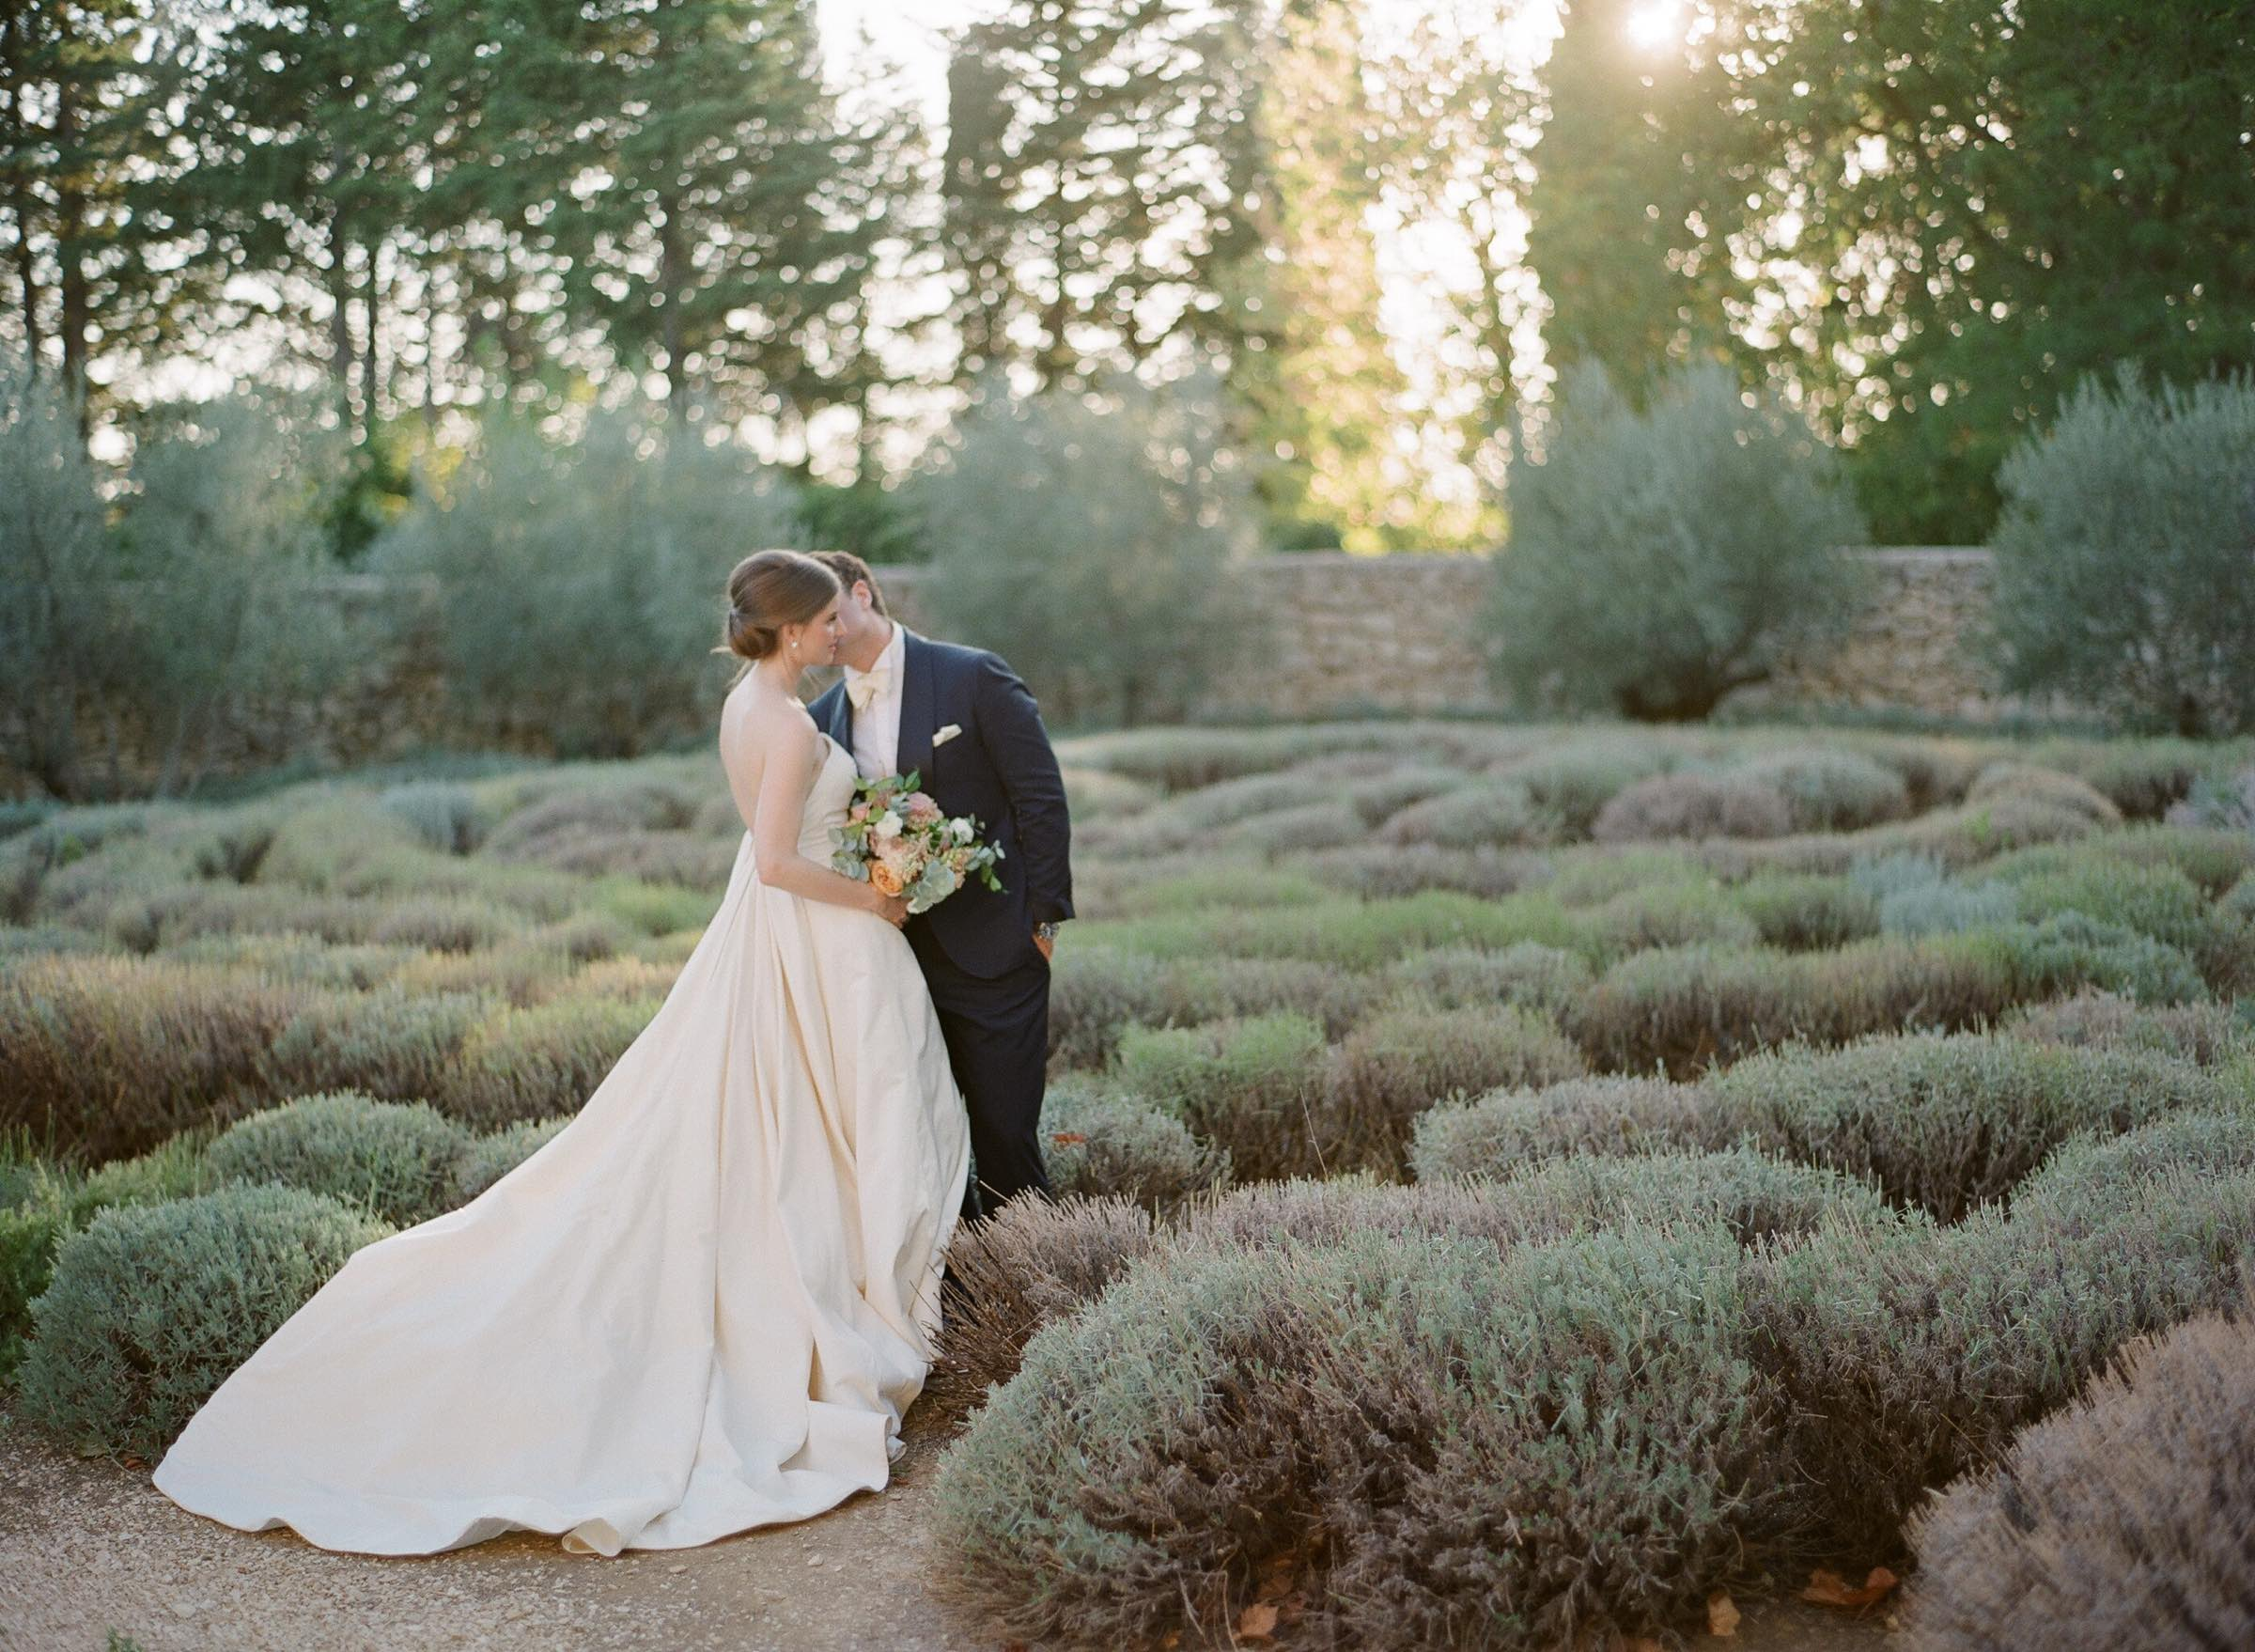 Groom kissing his bride in a lavender garden